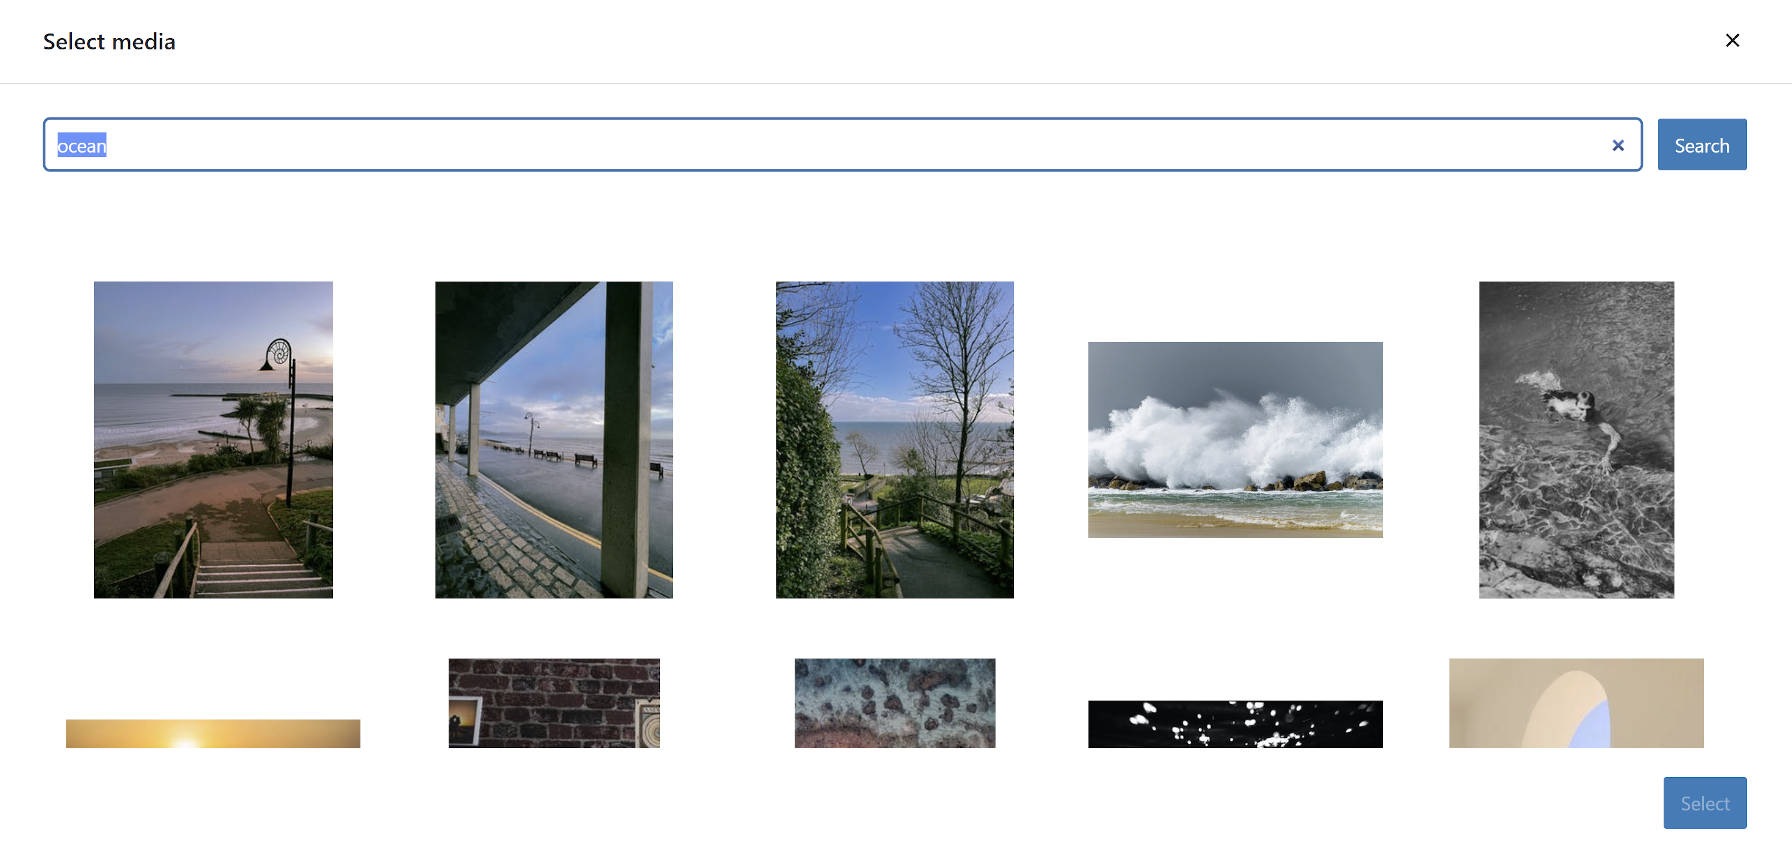 Media library view of Pexels photo search via the Jetpack plugin.